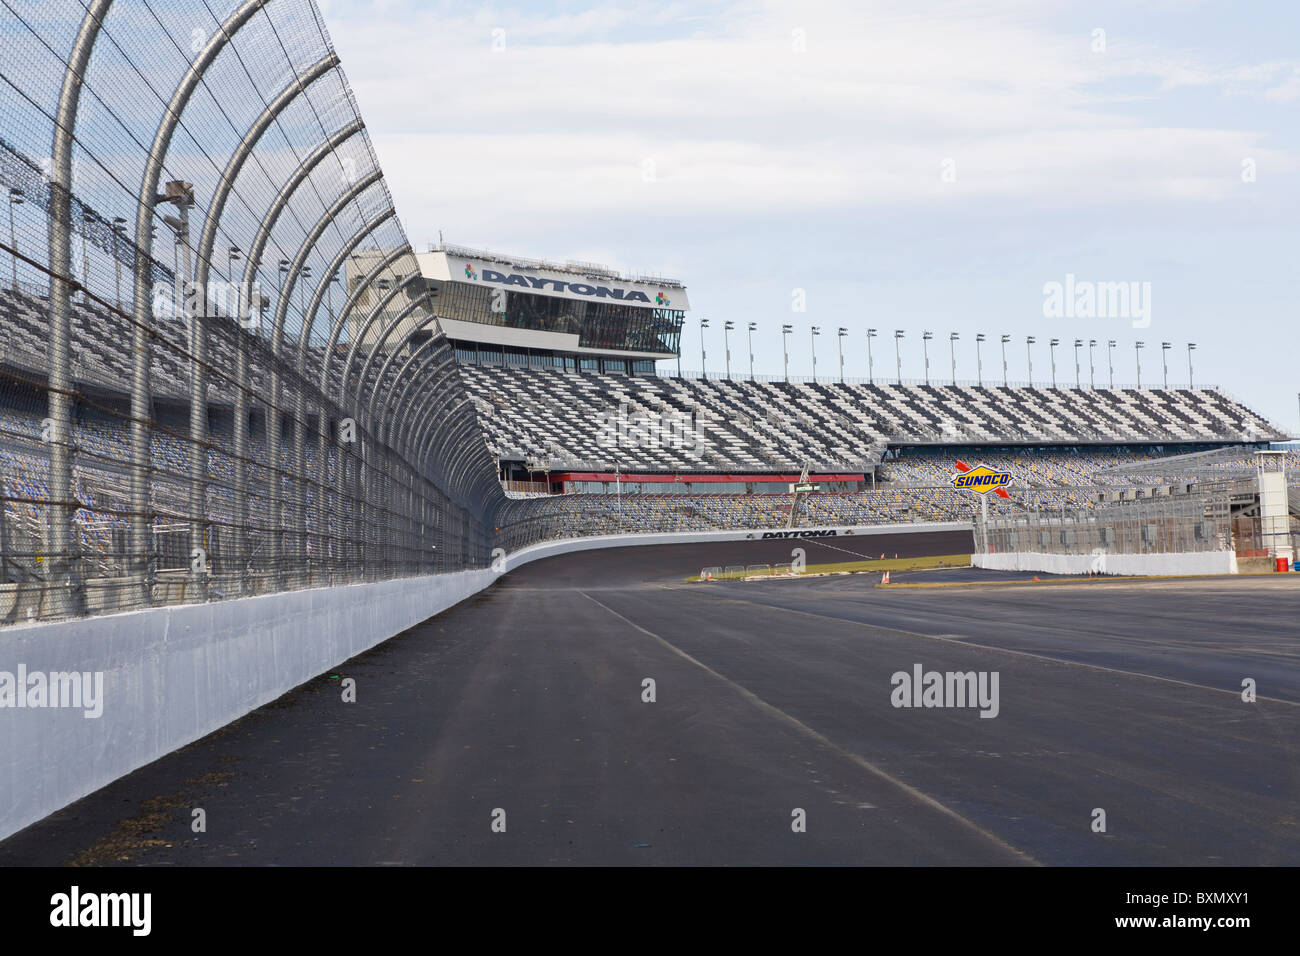 Empty race track at Daytona International Speedway in Daytona Beach Florida - Stock Image